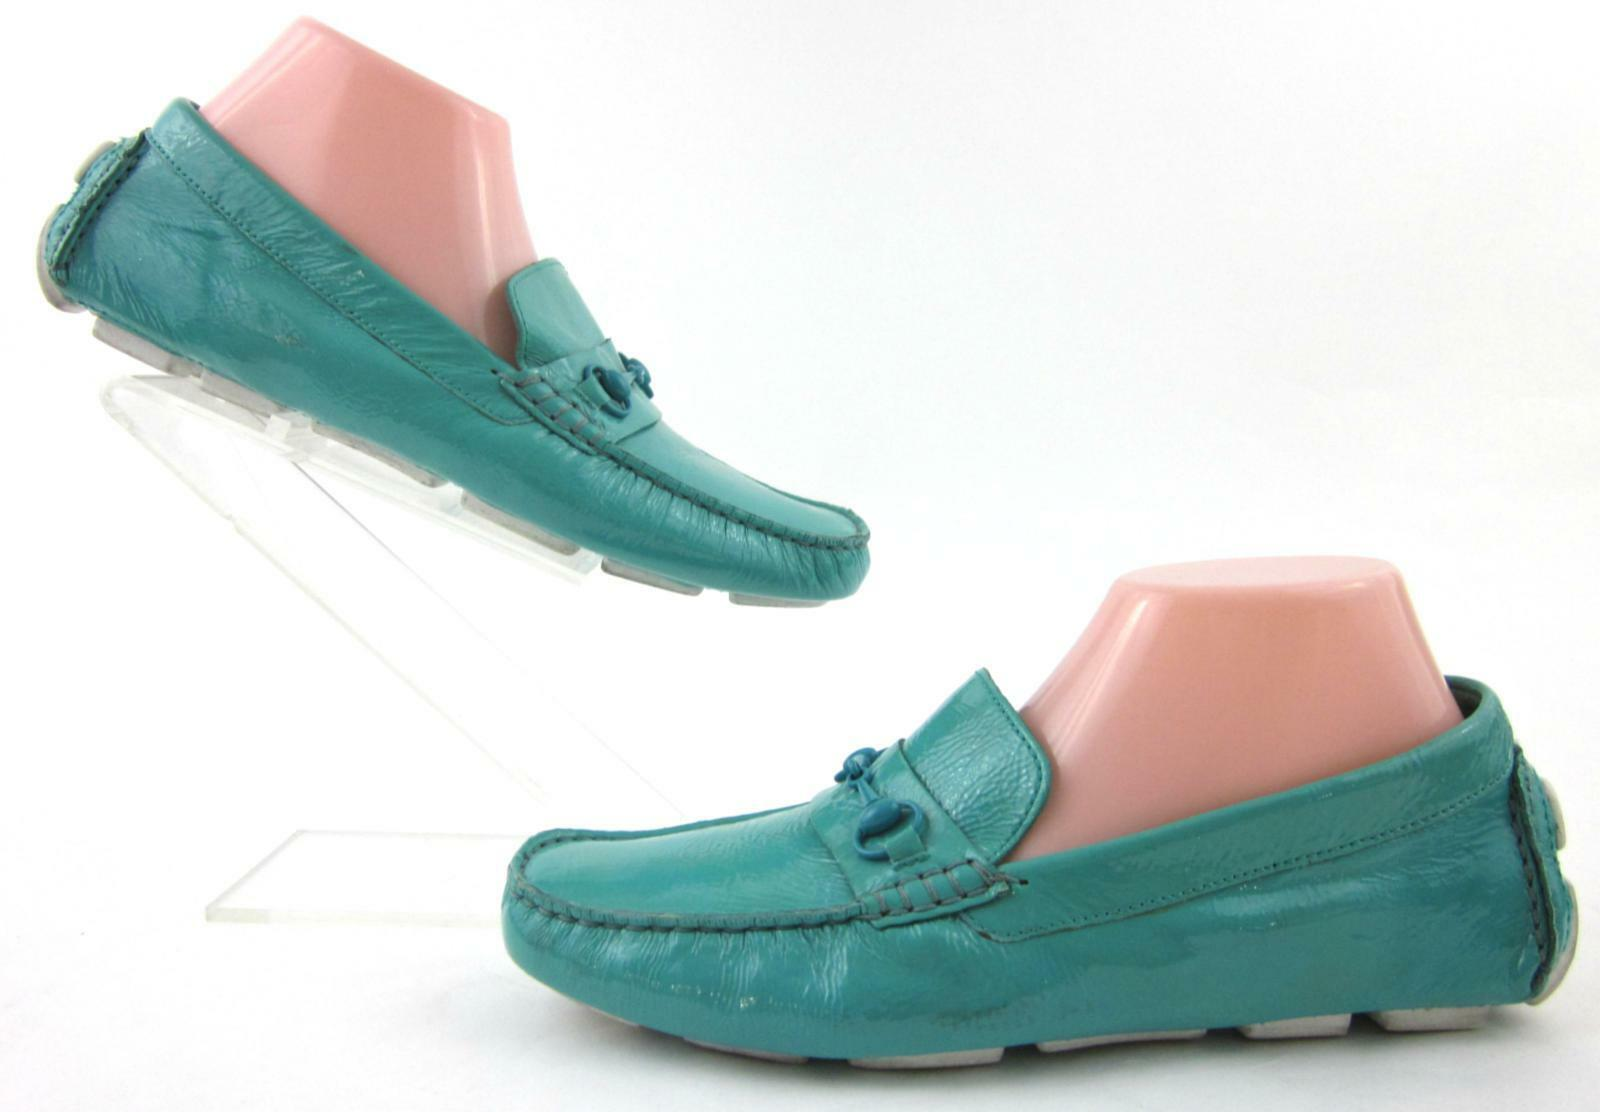 Cole Haan Womens Driving Moc Loafers Soft Turquoise Crinkle Patent Leather 8.5B